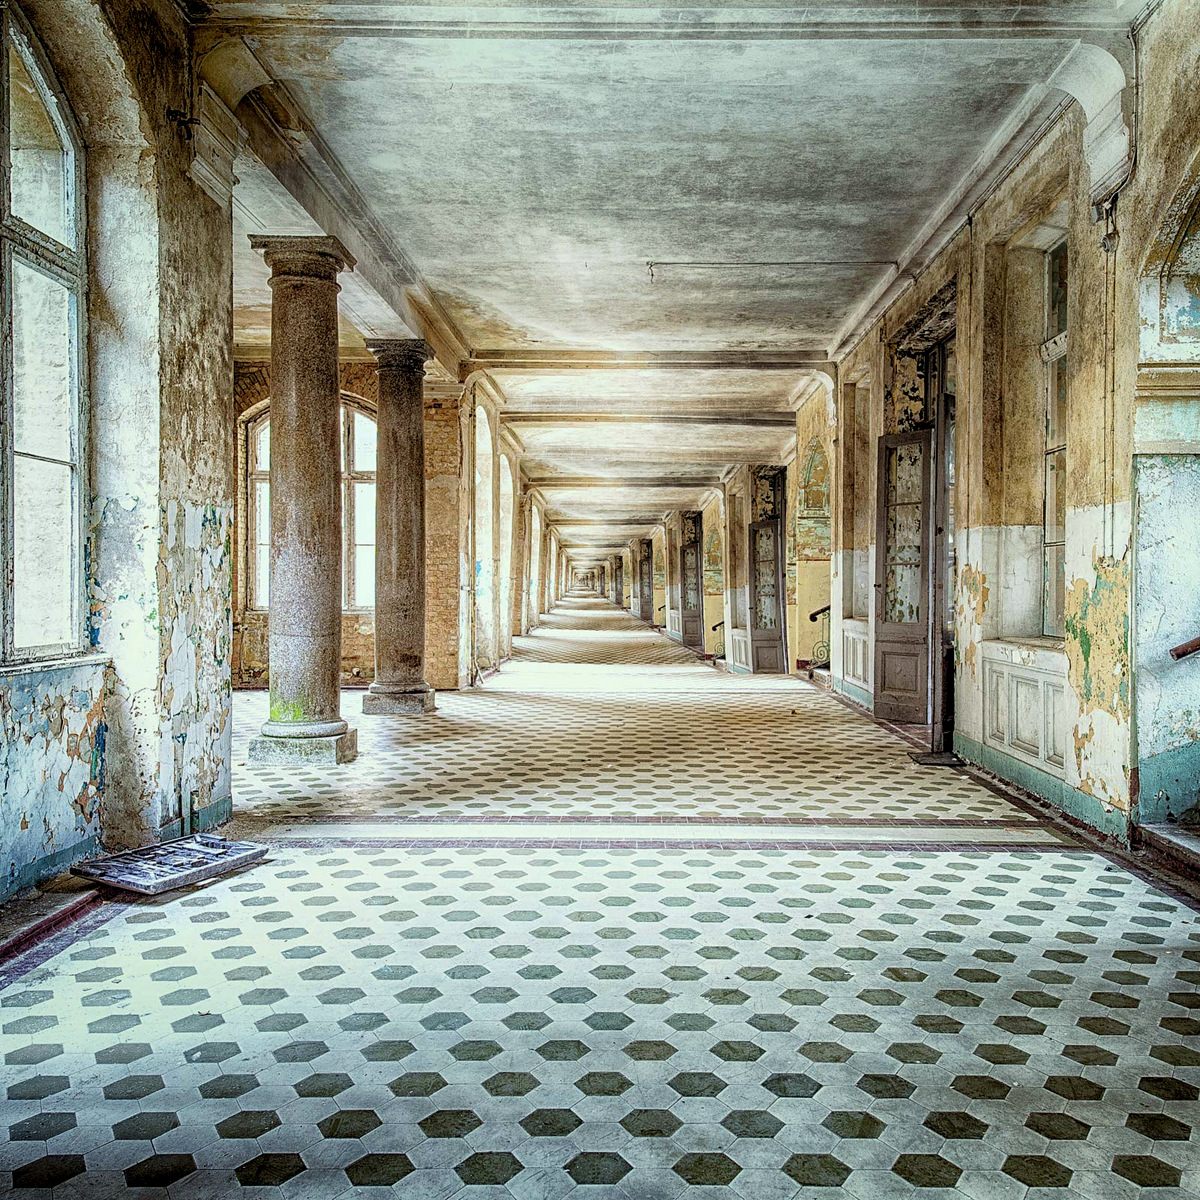 The beauty of decay VII  by Markus Studtmann